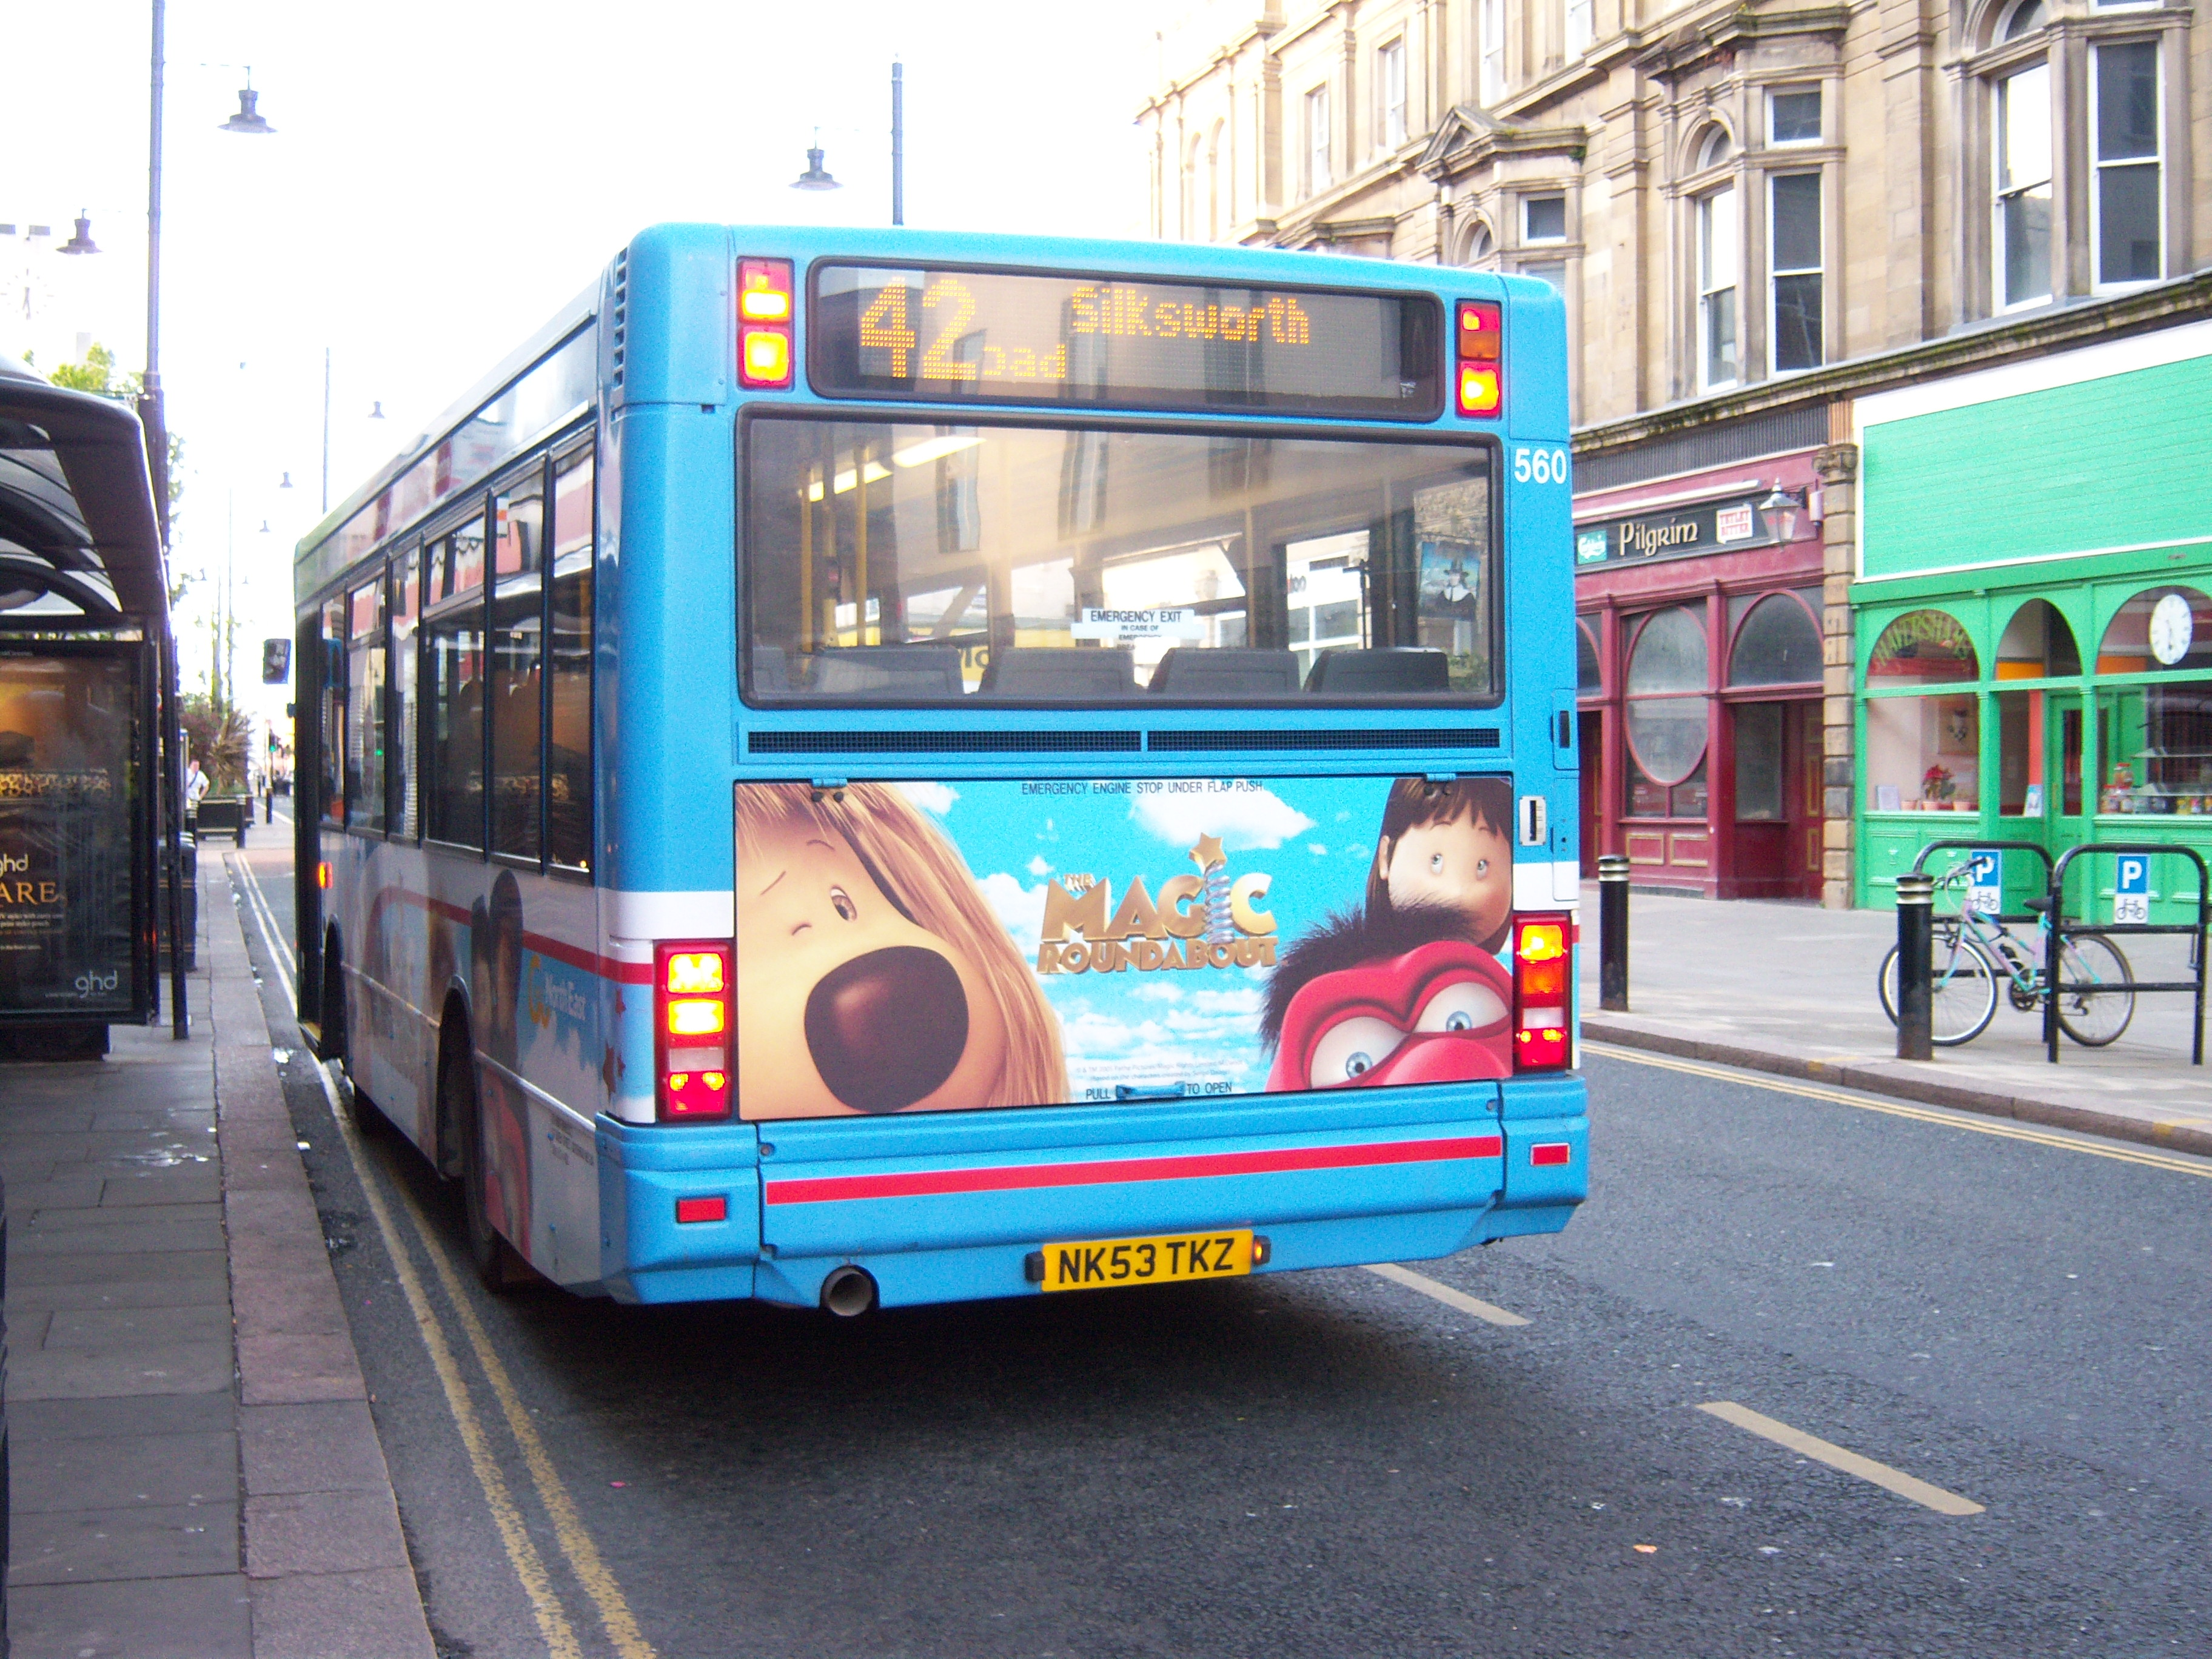 file:go north east bus 560 dennis dart mpd transbus nk53 tkz magic